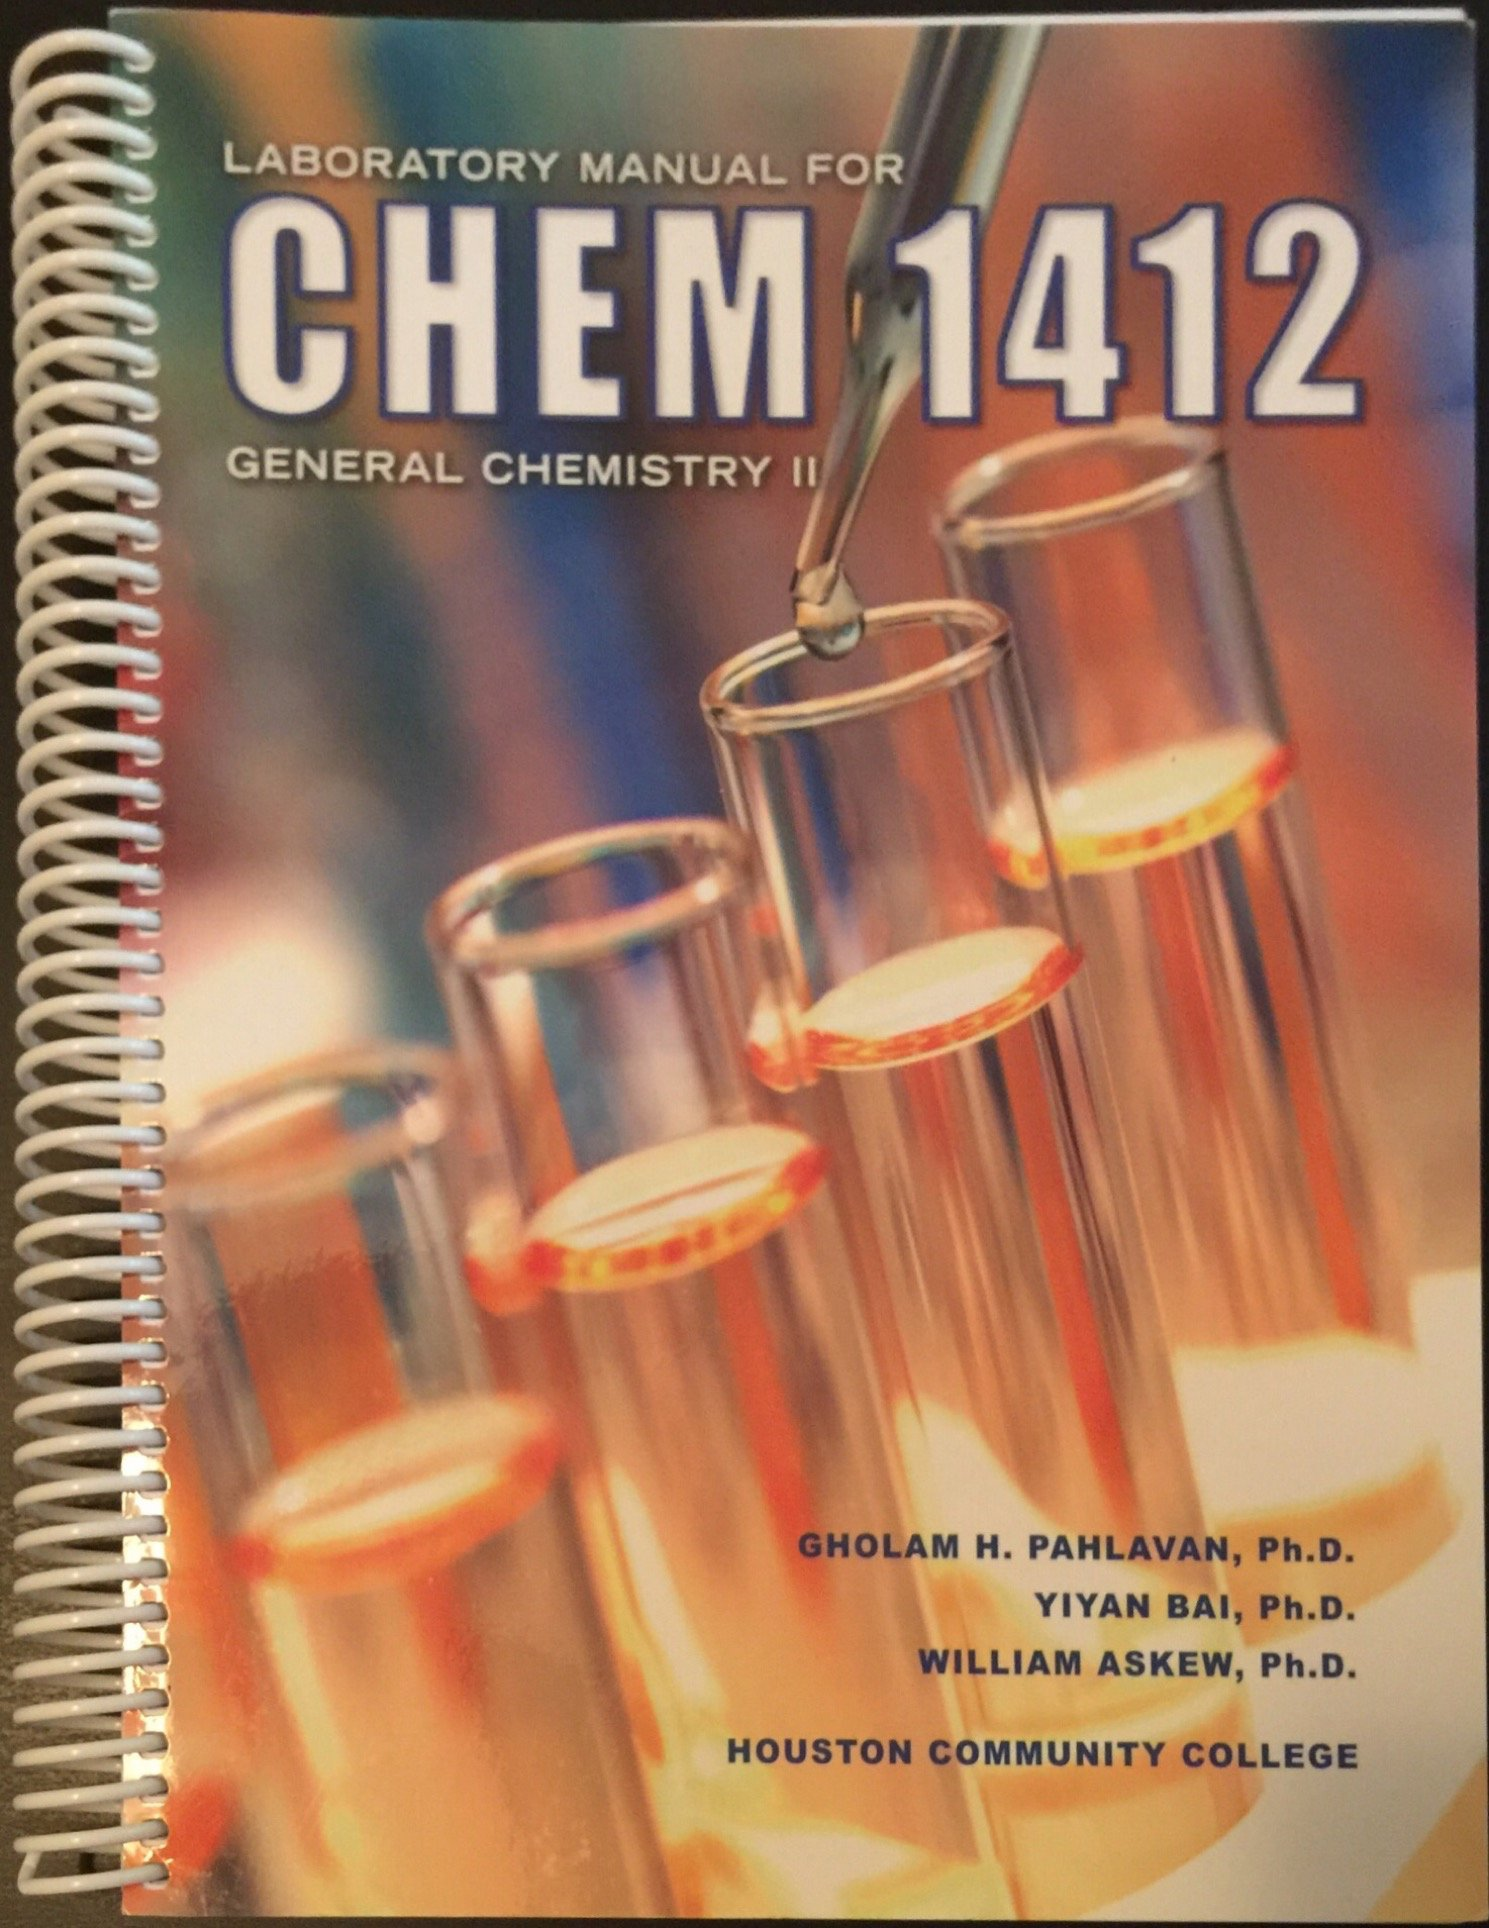 Laboratory Manual for Chem 1412: General Chemistry II: Gholam H. Pahlavan,  Yiyan Bai, William Askew, Houston Community College: 9781599843810:  Amazon.com: ...